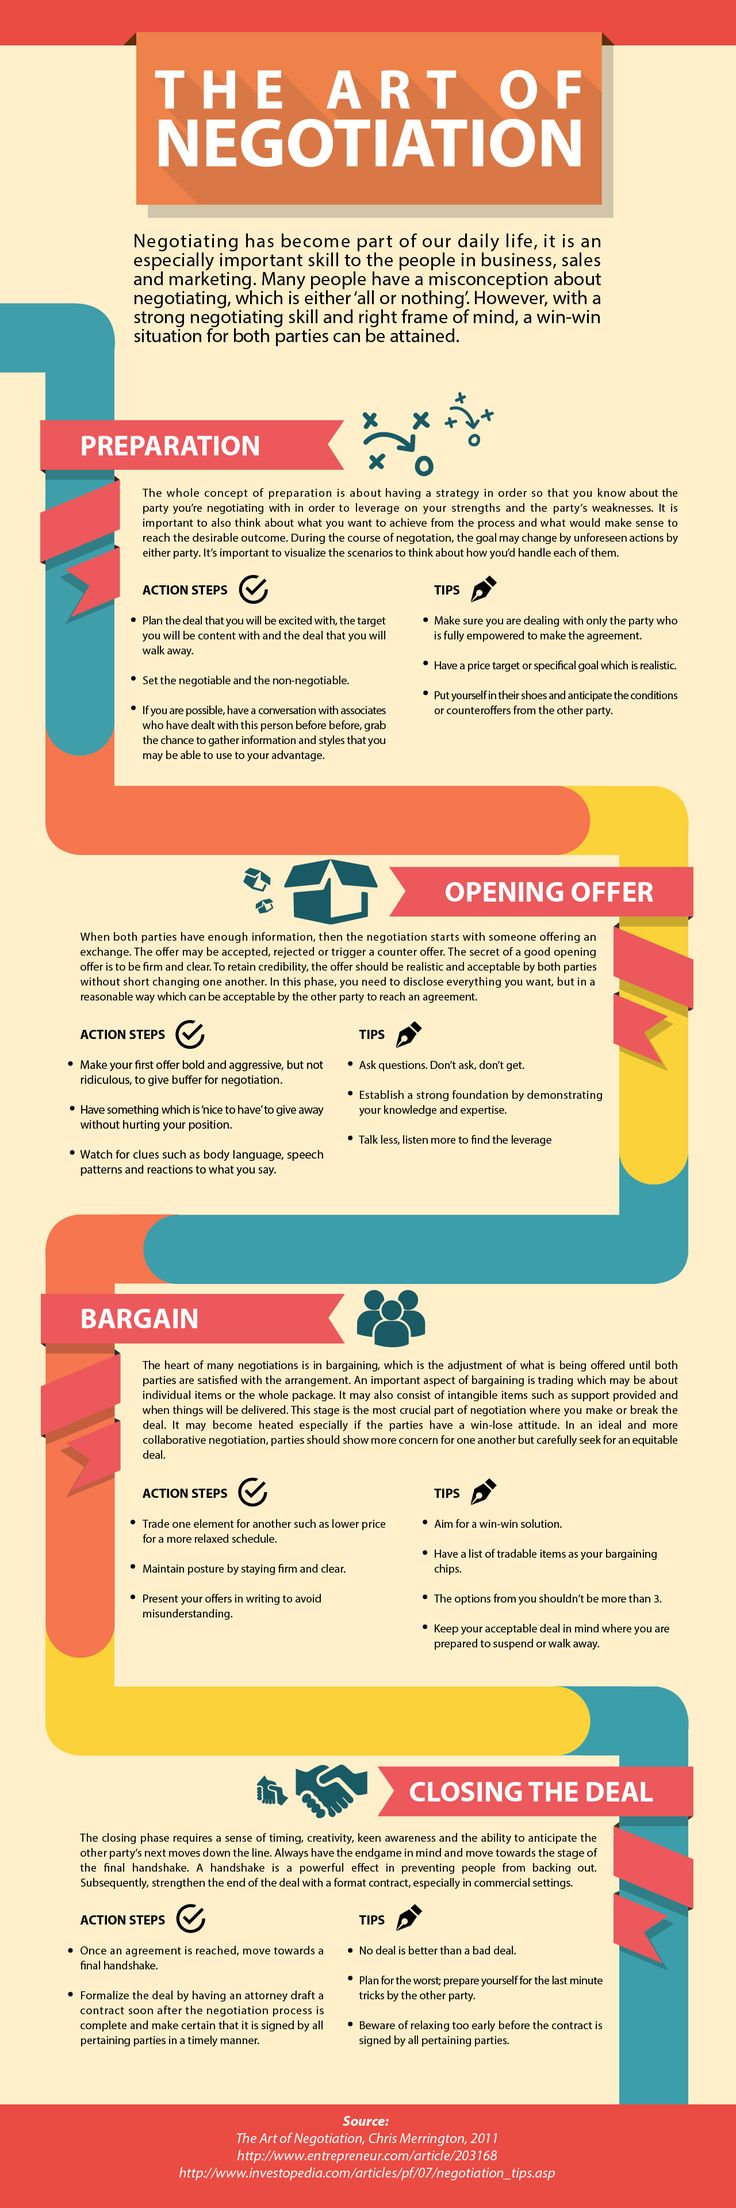 The Art Of Negotiation Infographic